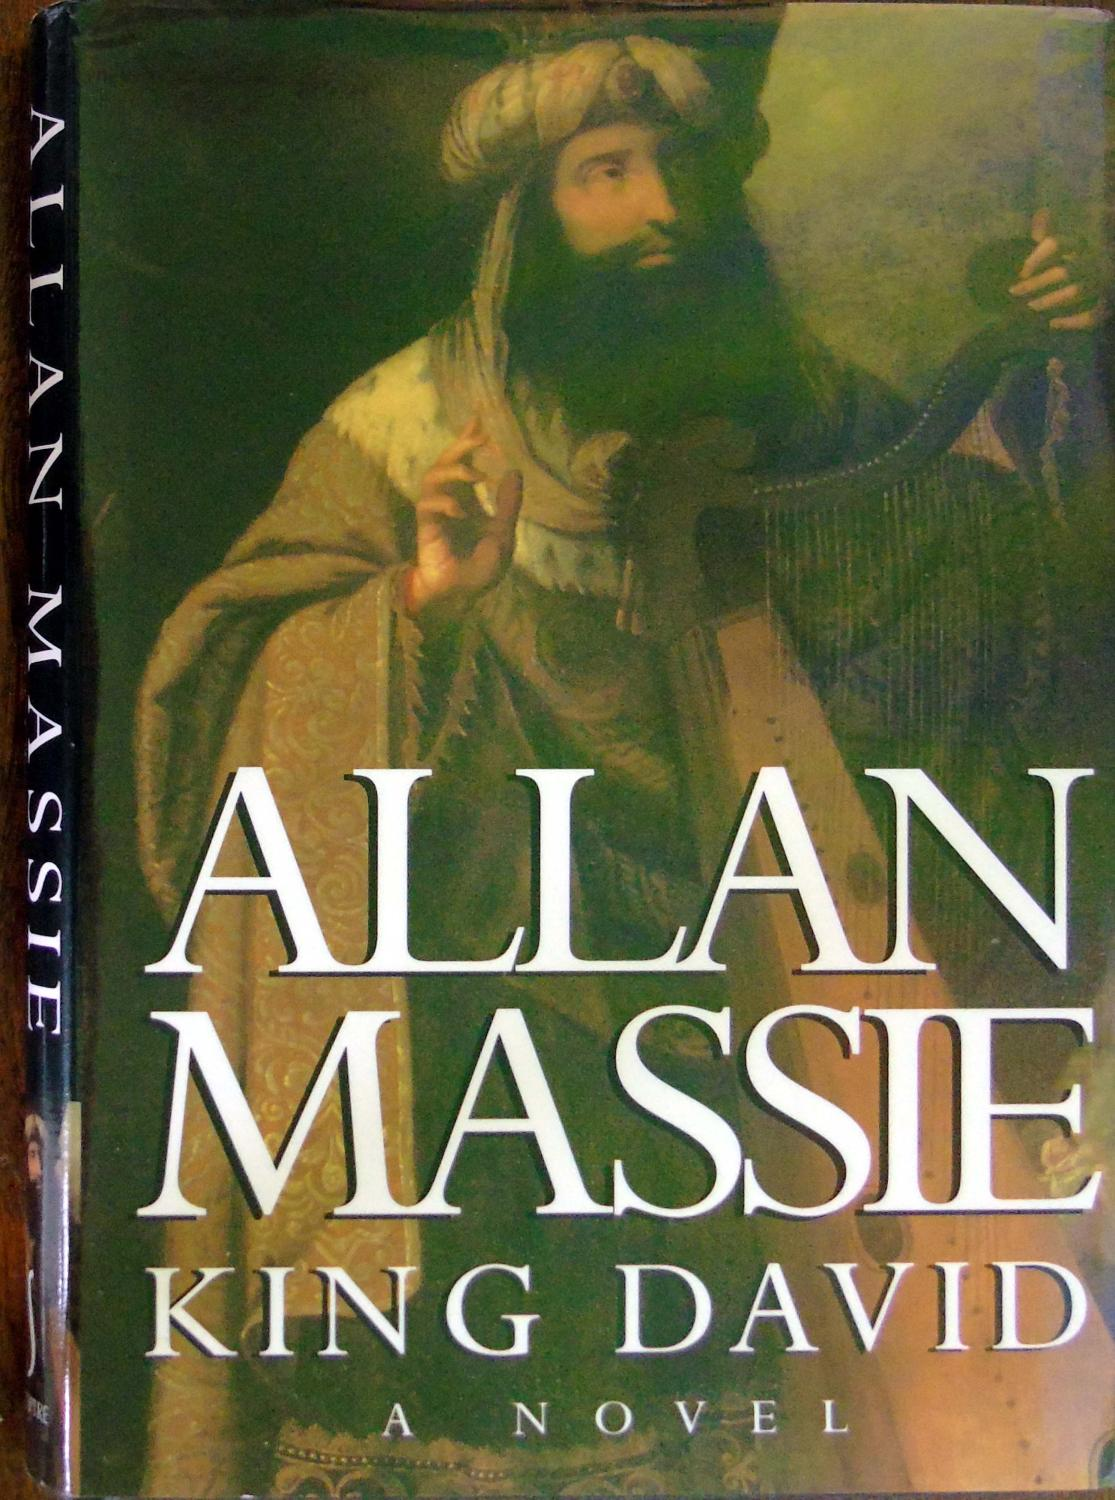 King David - Massie, Allan